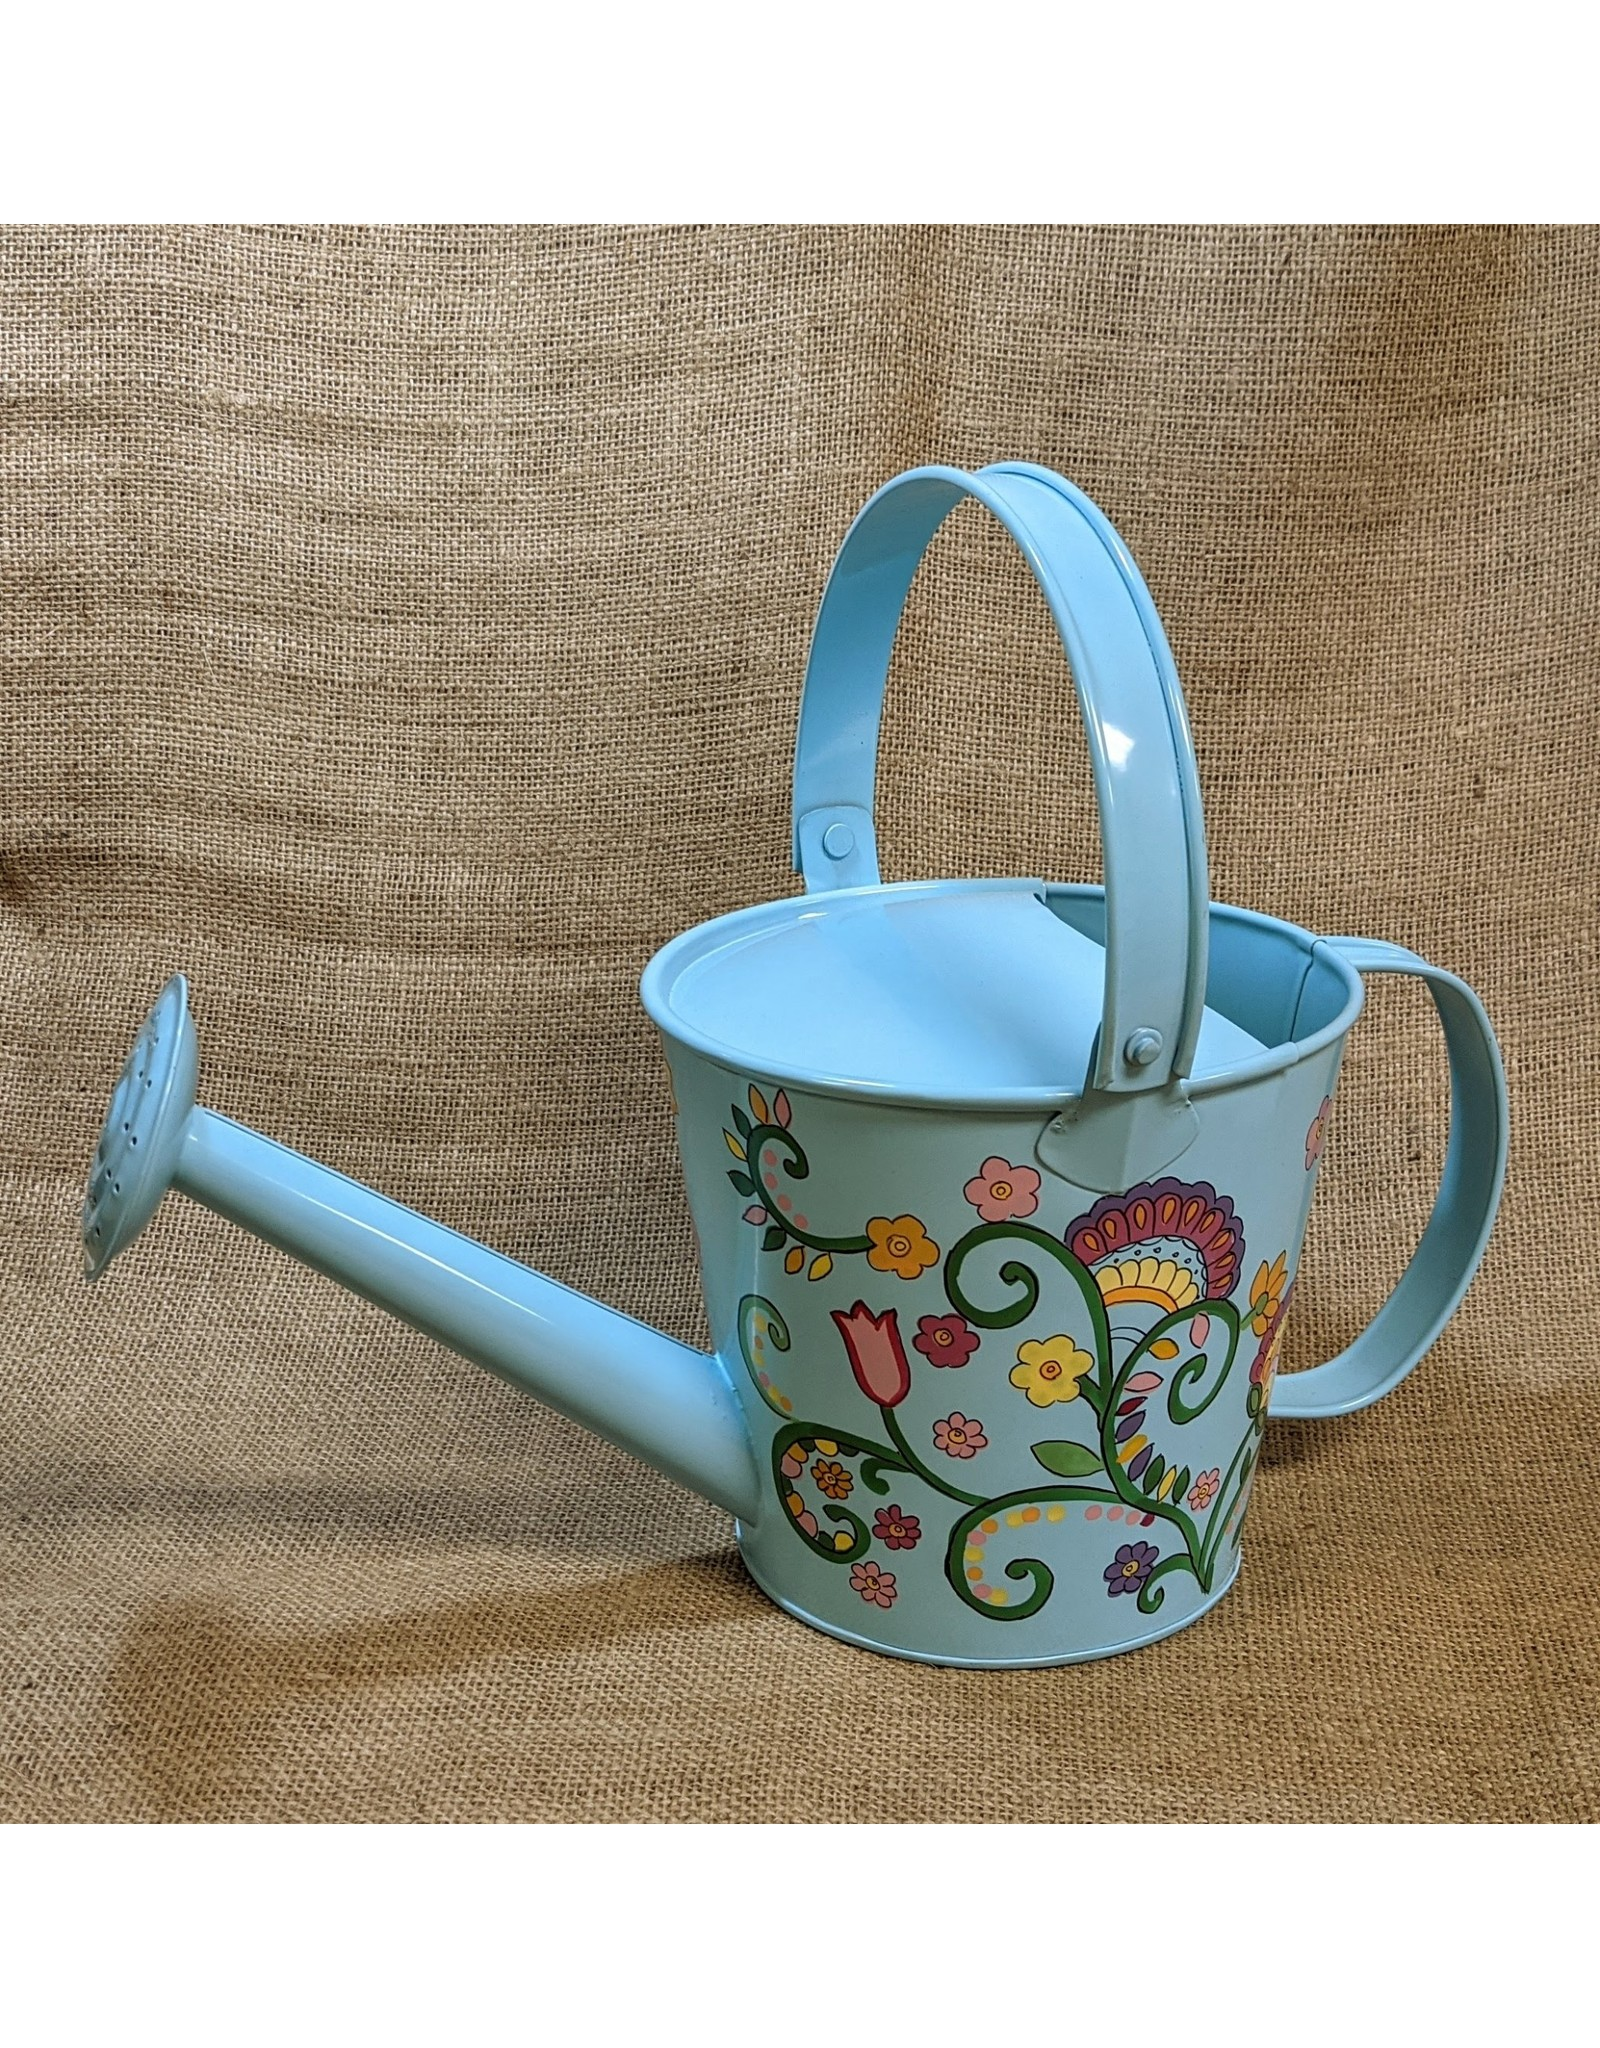 Ten Thousand Villages CLEARANCE  Watering Can Turquoise/Floral, India